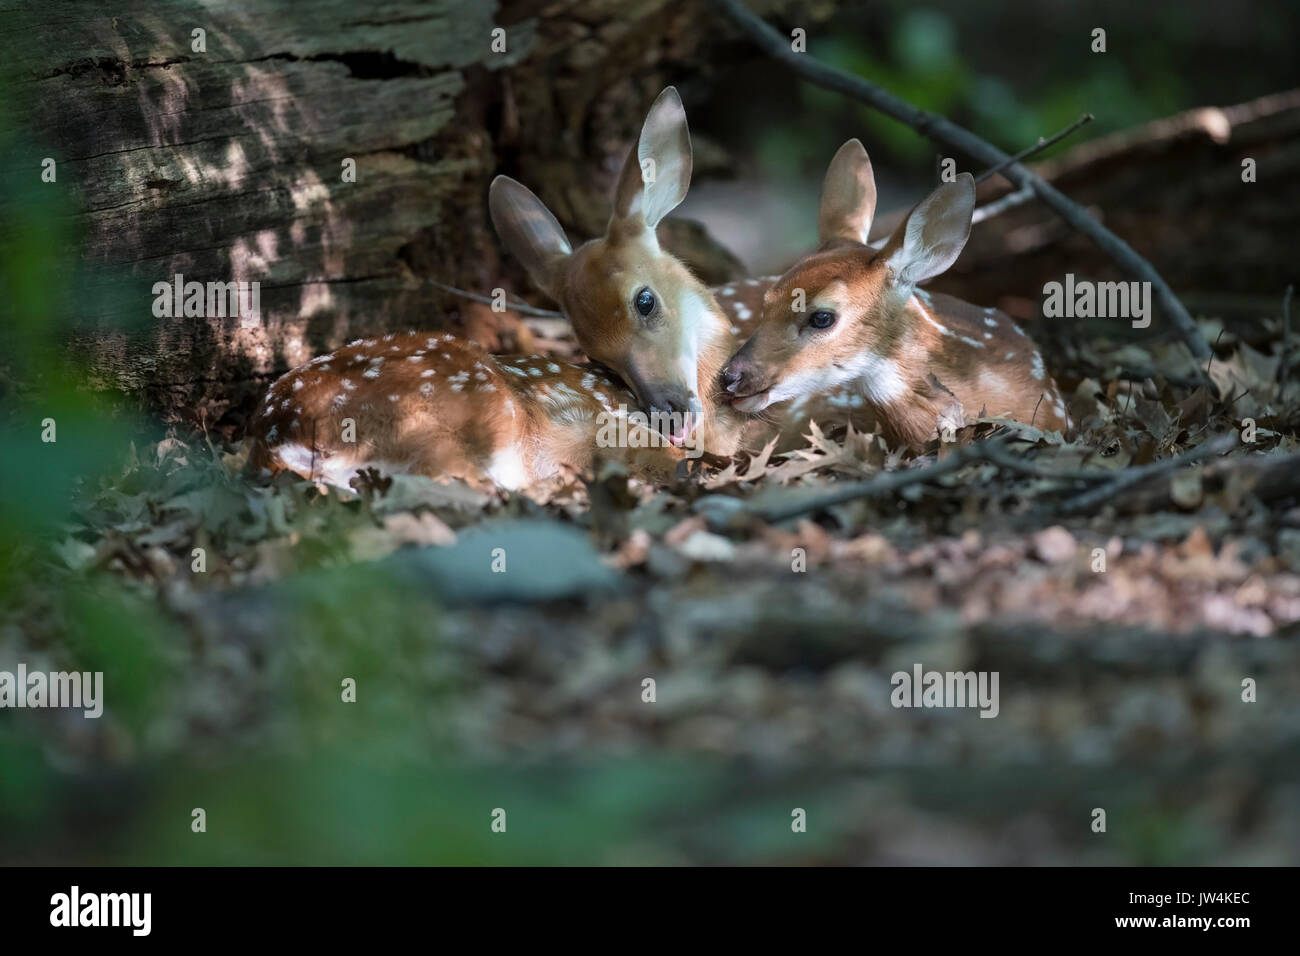 Two fawn deer resting together. - Stock Image